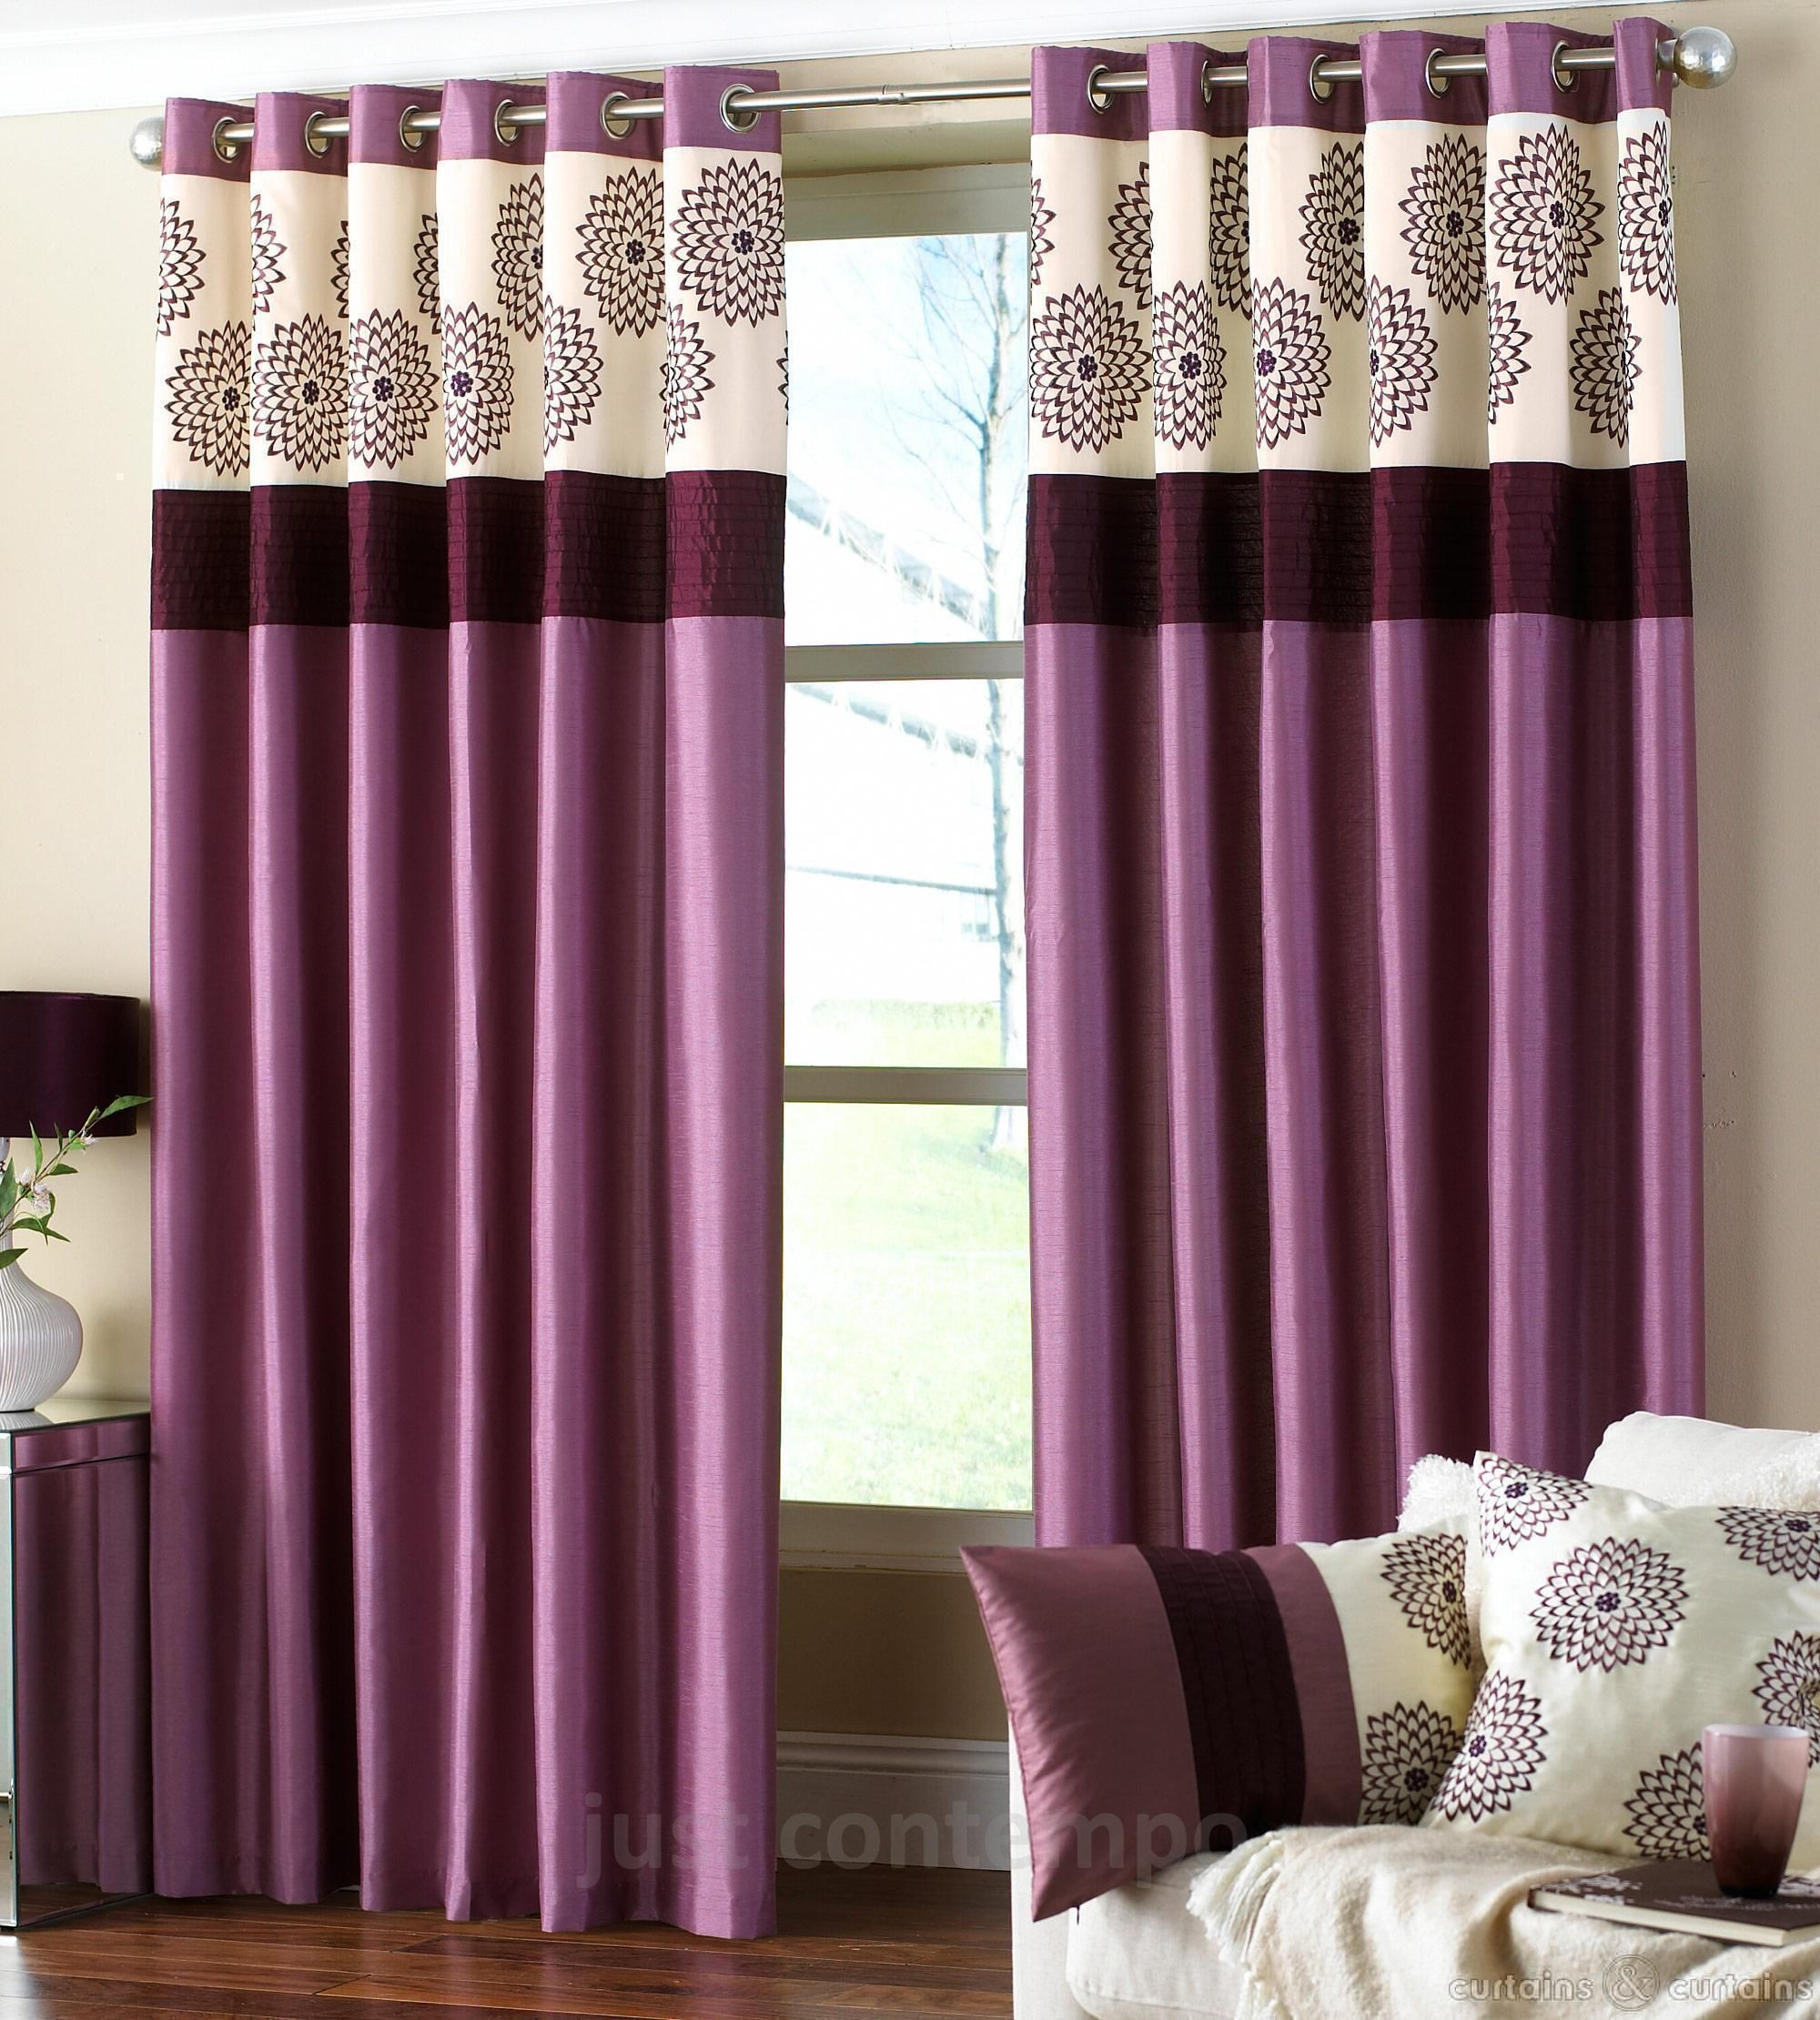 Cortinas y decoraci n modatelas cortinas pinterest for Decoracion cortinas